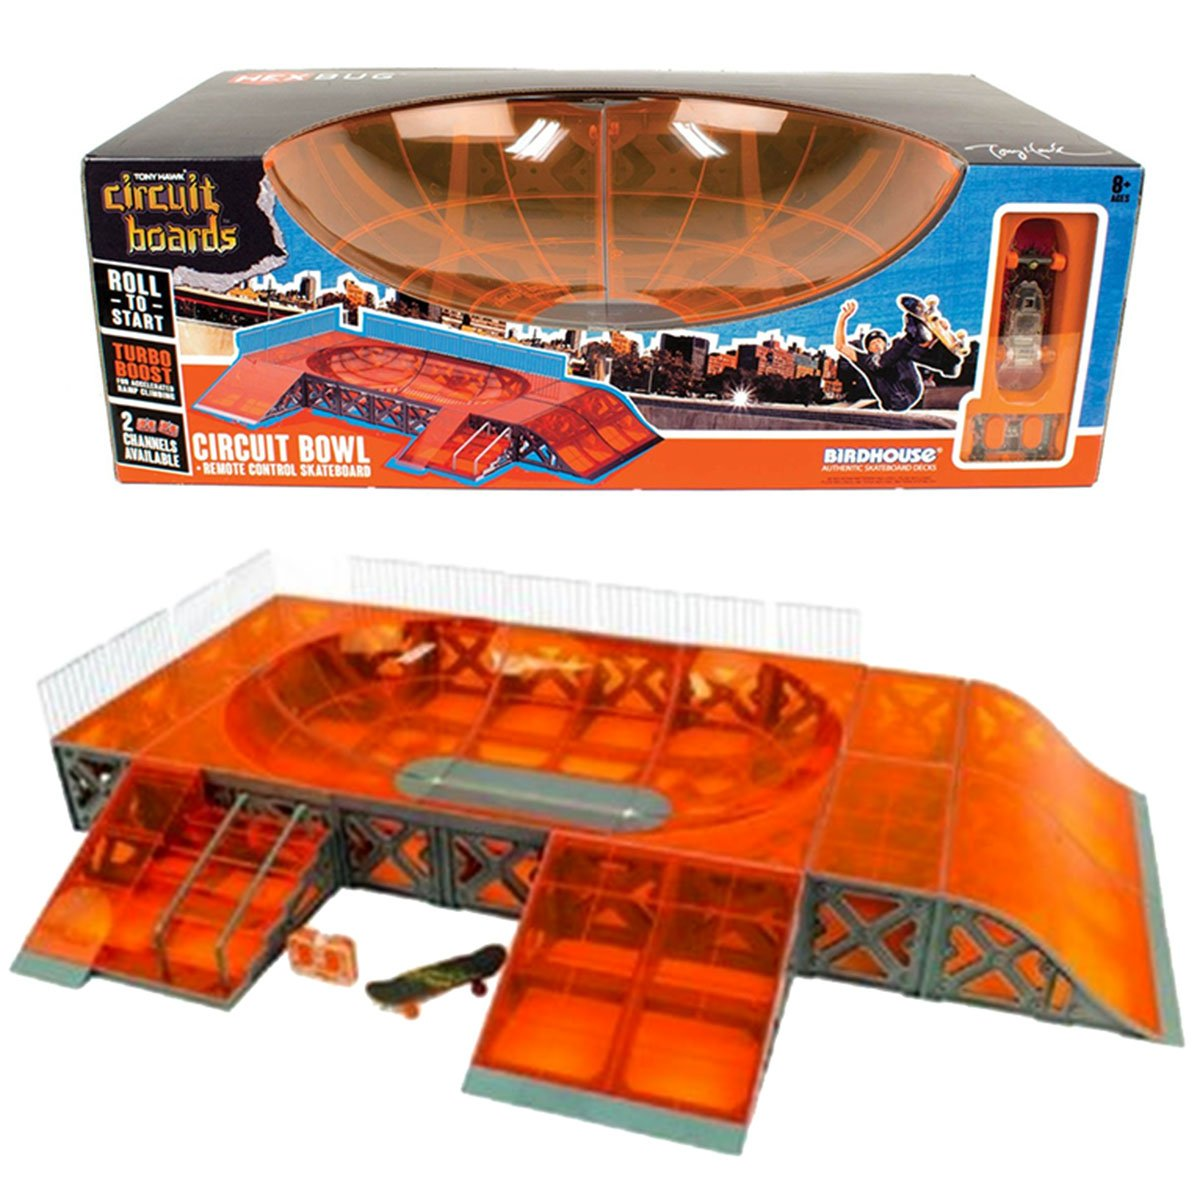 HexBug Year 2015 Tony Hawk Circuit Boards Set - CIRCUIT BOWL with Roll In, Inner Bowl, Flat Bank, Stairs & Rails Plus Remote Control Skateboard